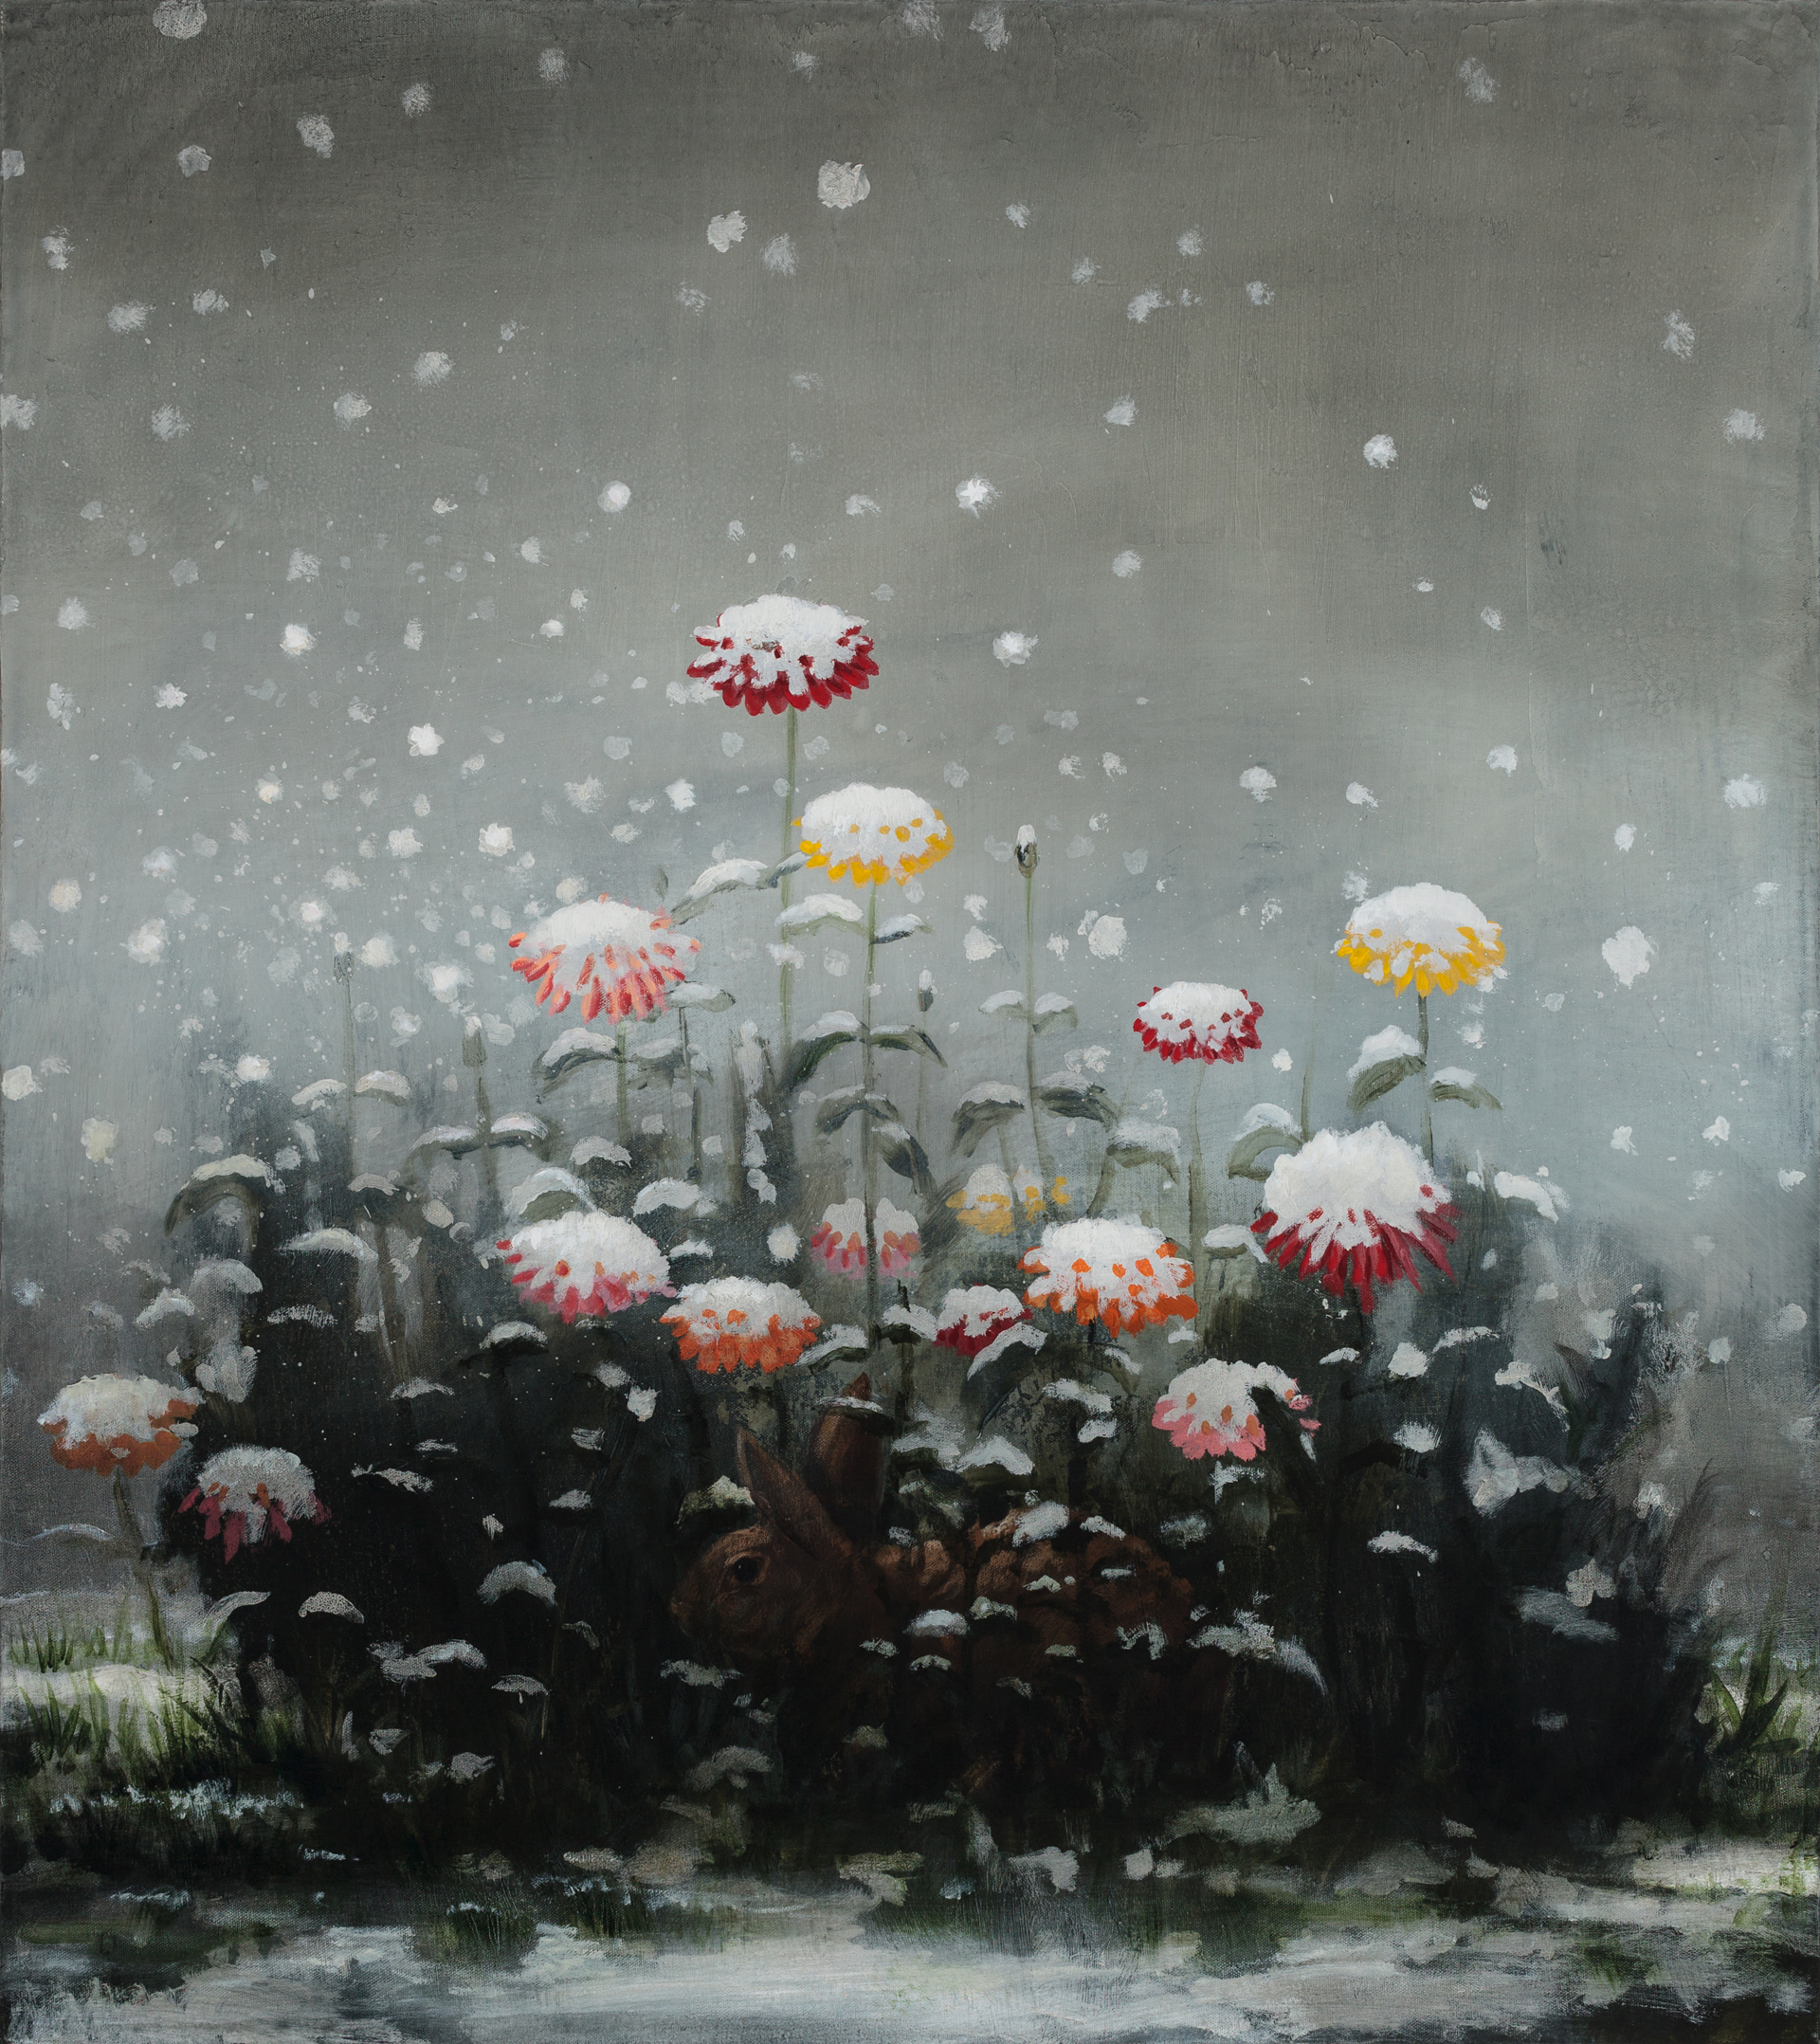 The First Snow by Kevin Sloan